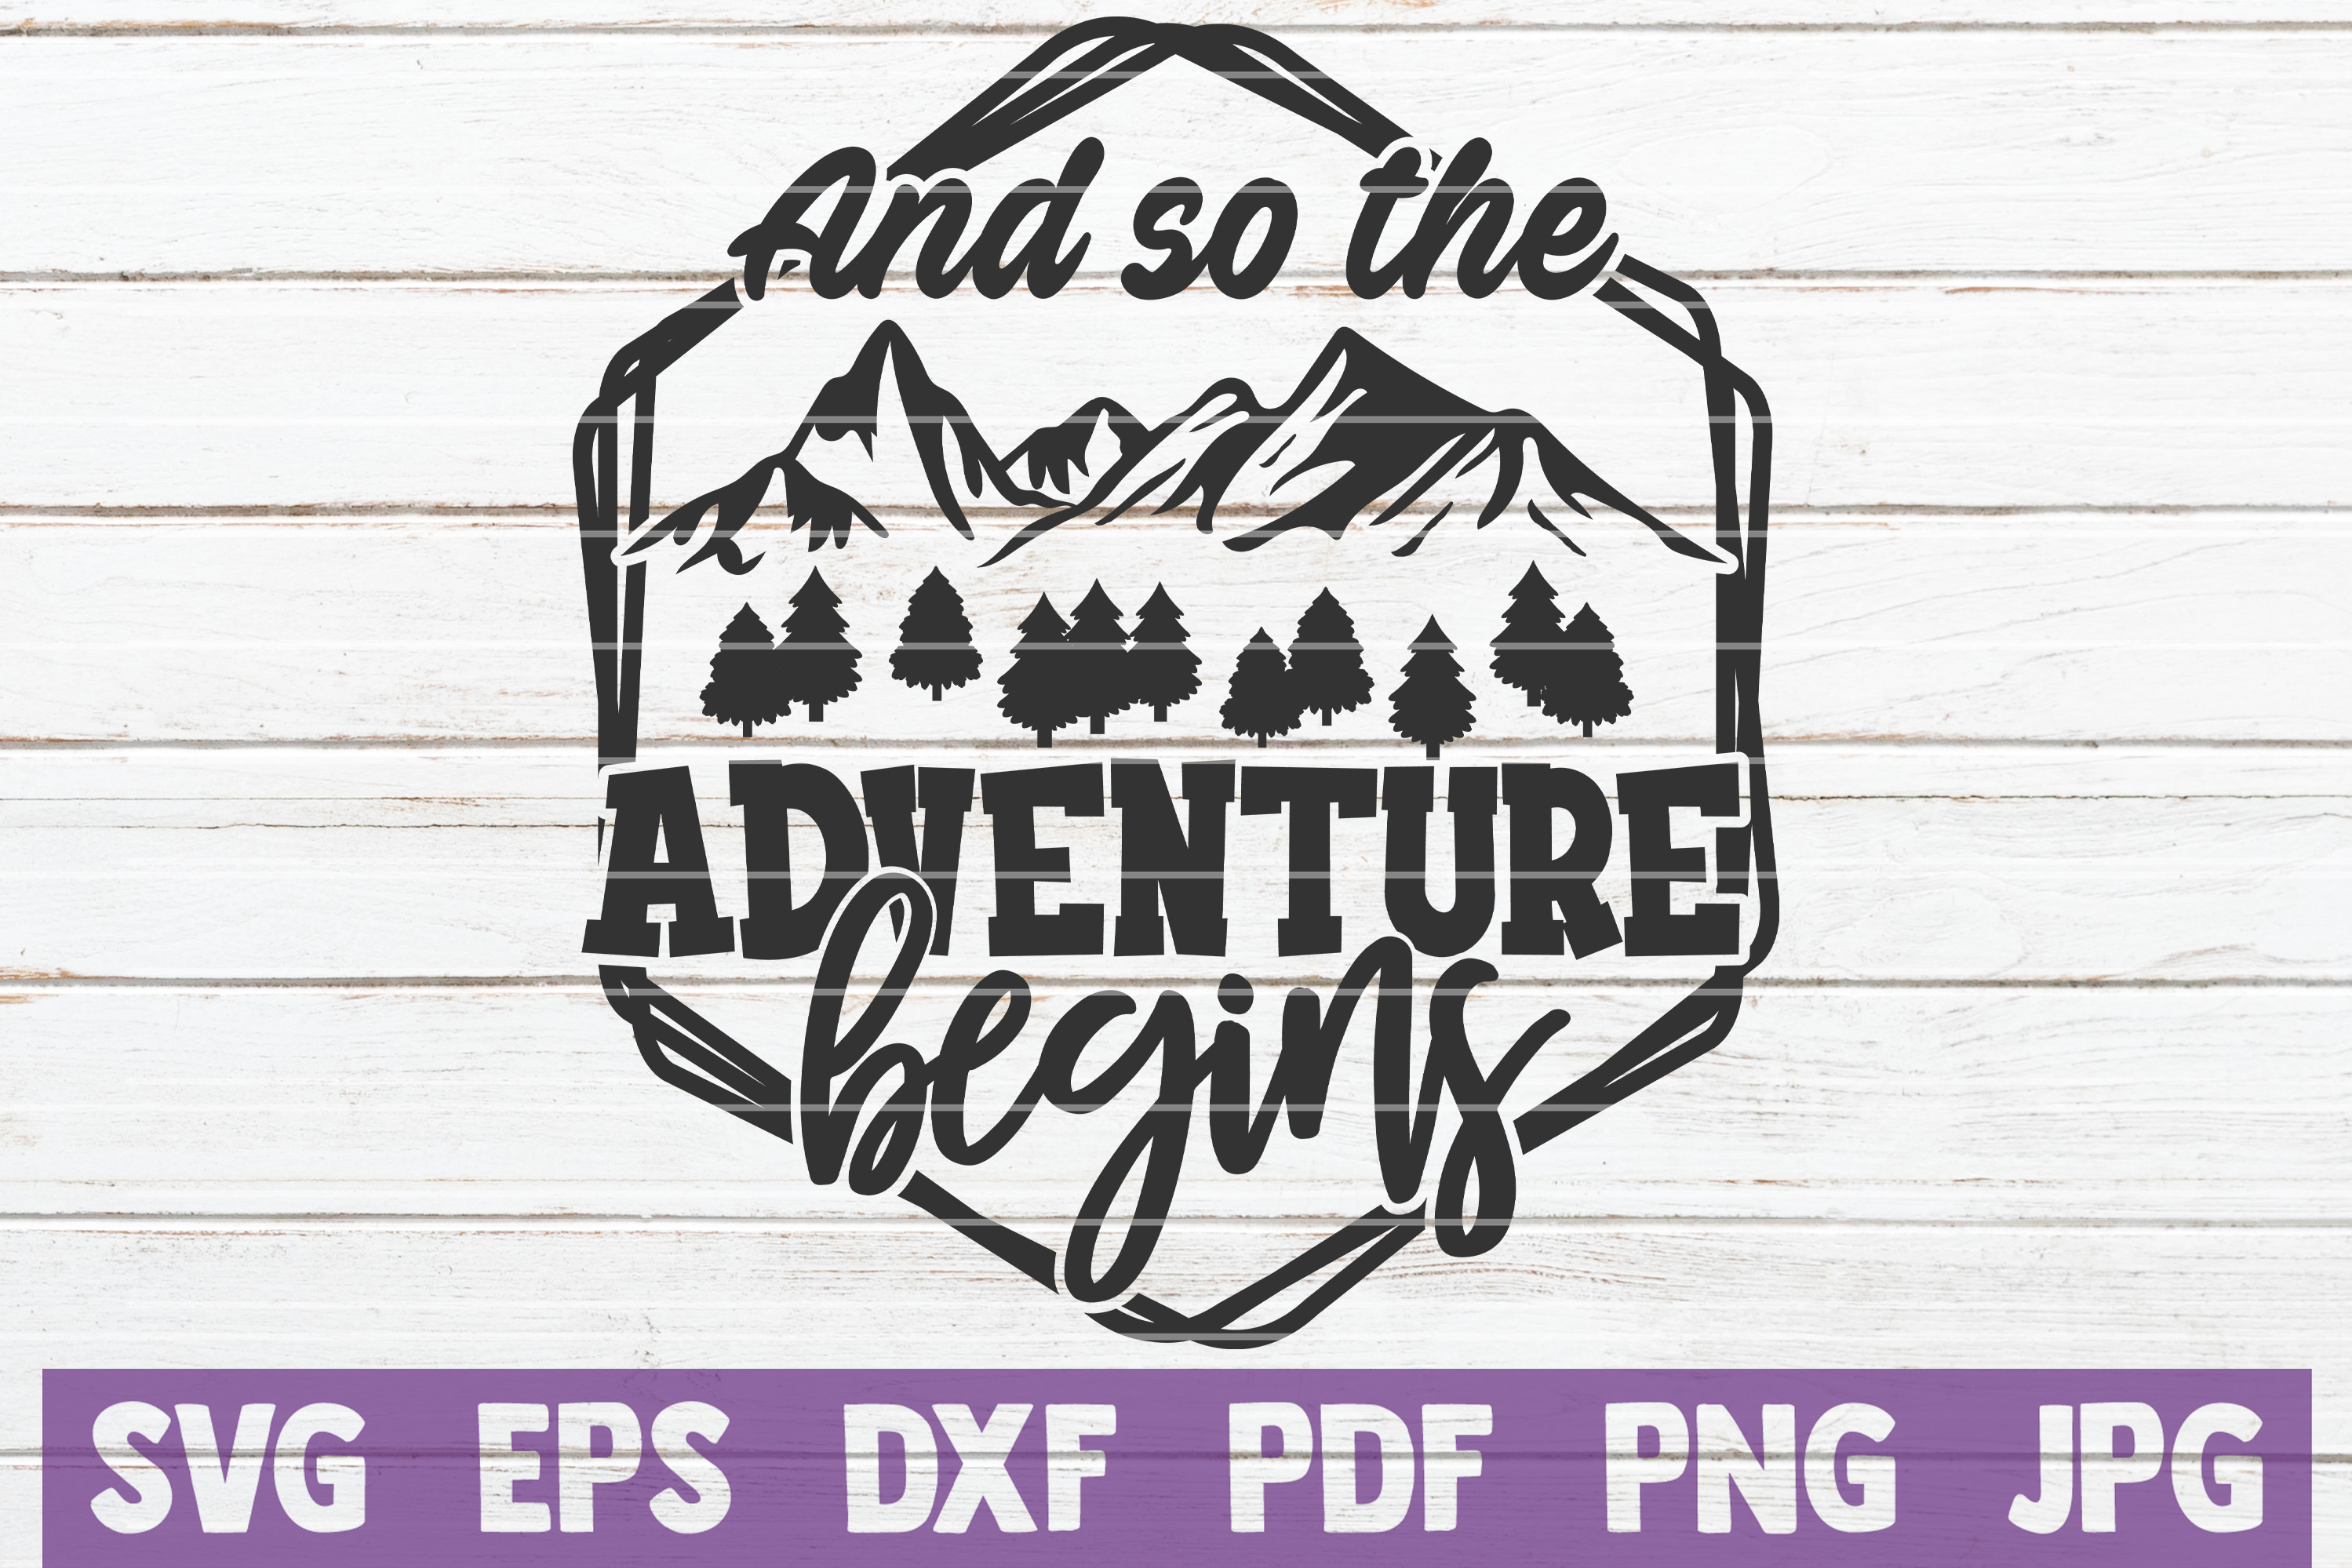 And So The Adventure Begins Svg Cut File Graphic By Mintymarshmallows Creative Fabrica